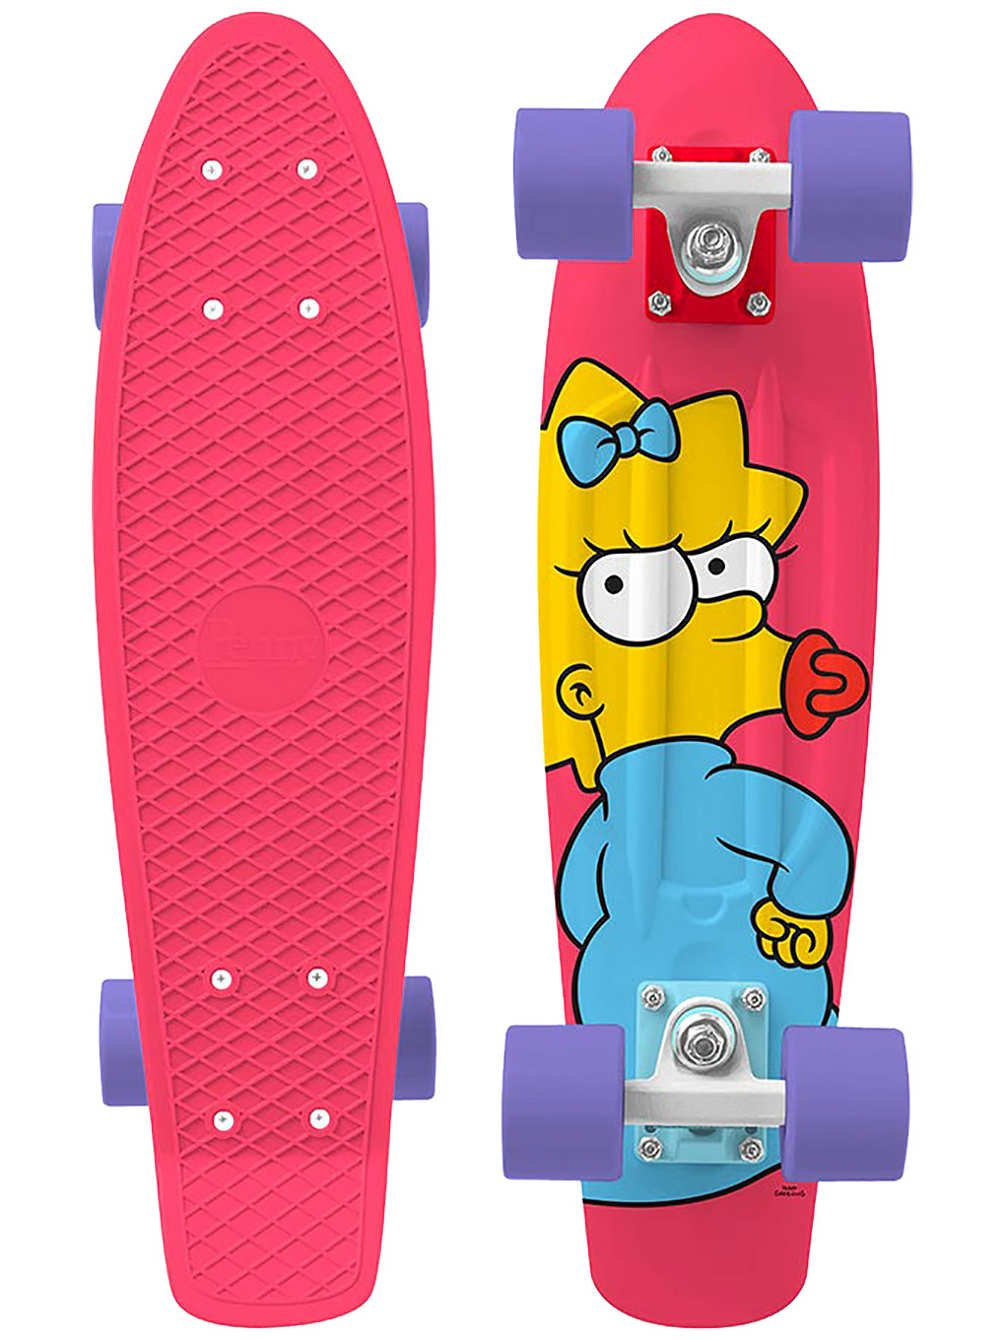 Penny - Simpsons Nickel 22 - Maggie - penny boards